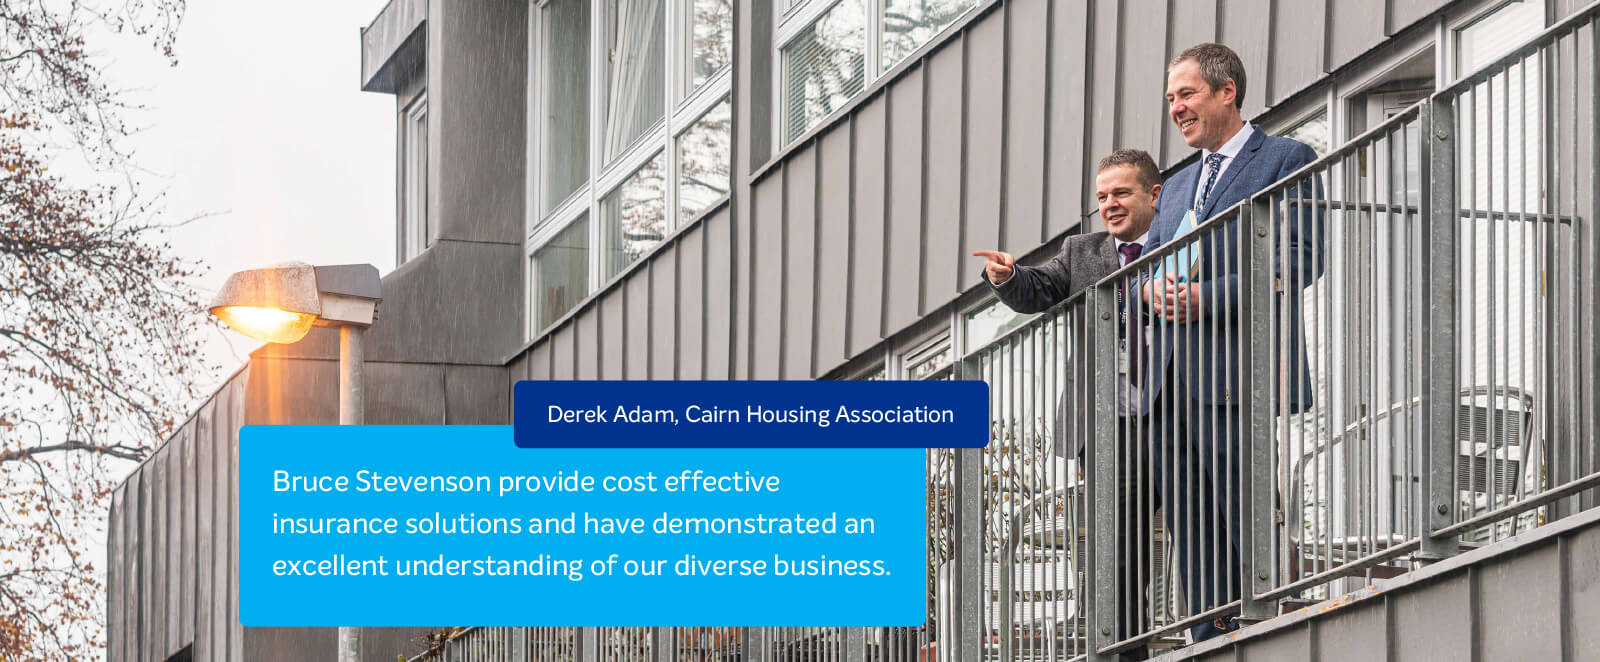 Cairn_Housing_Association